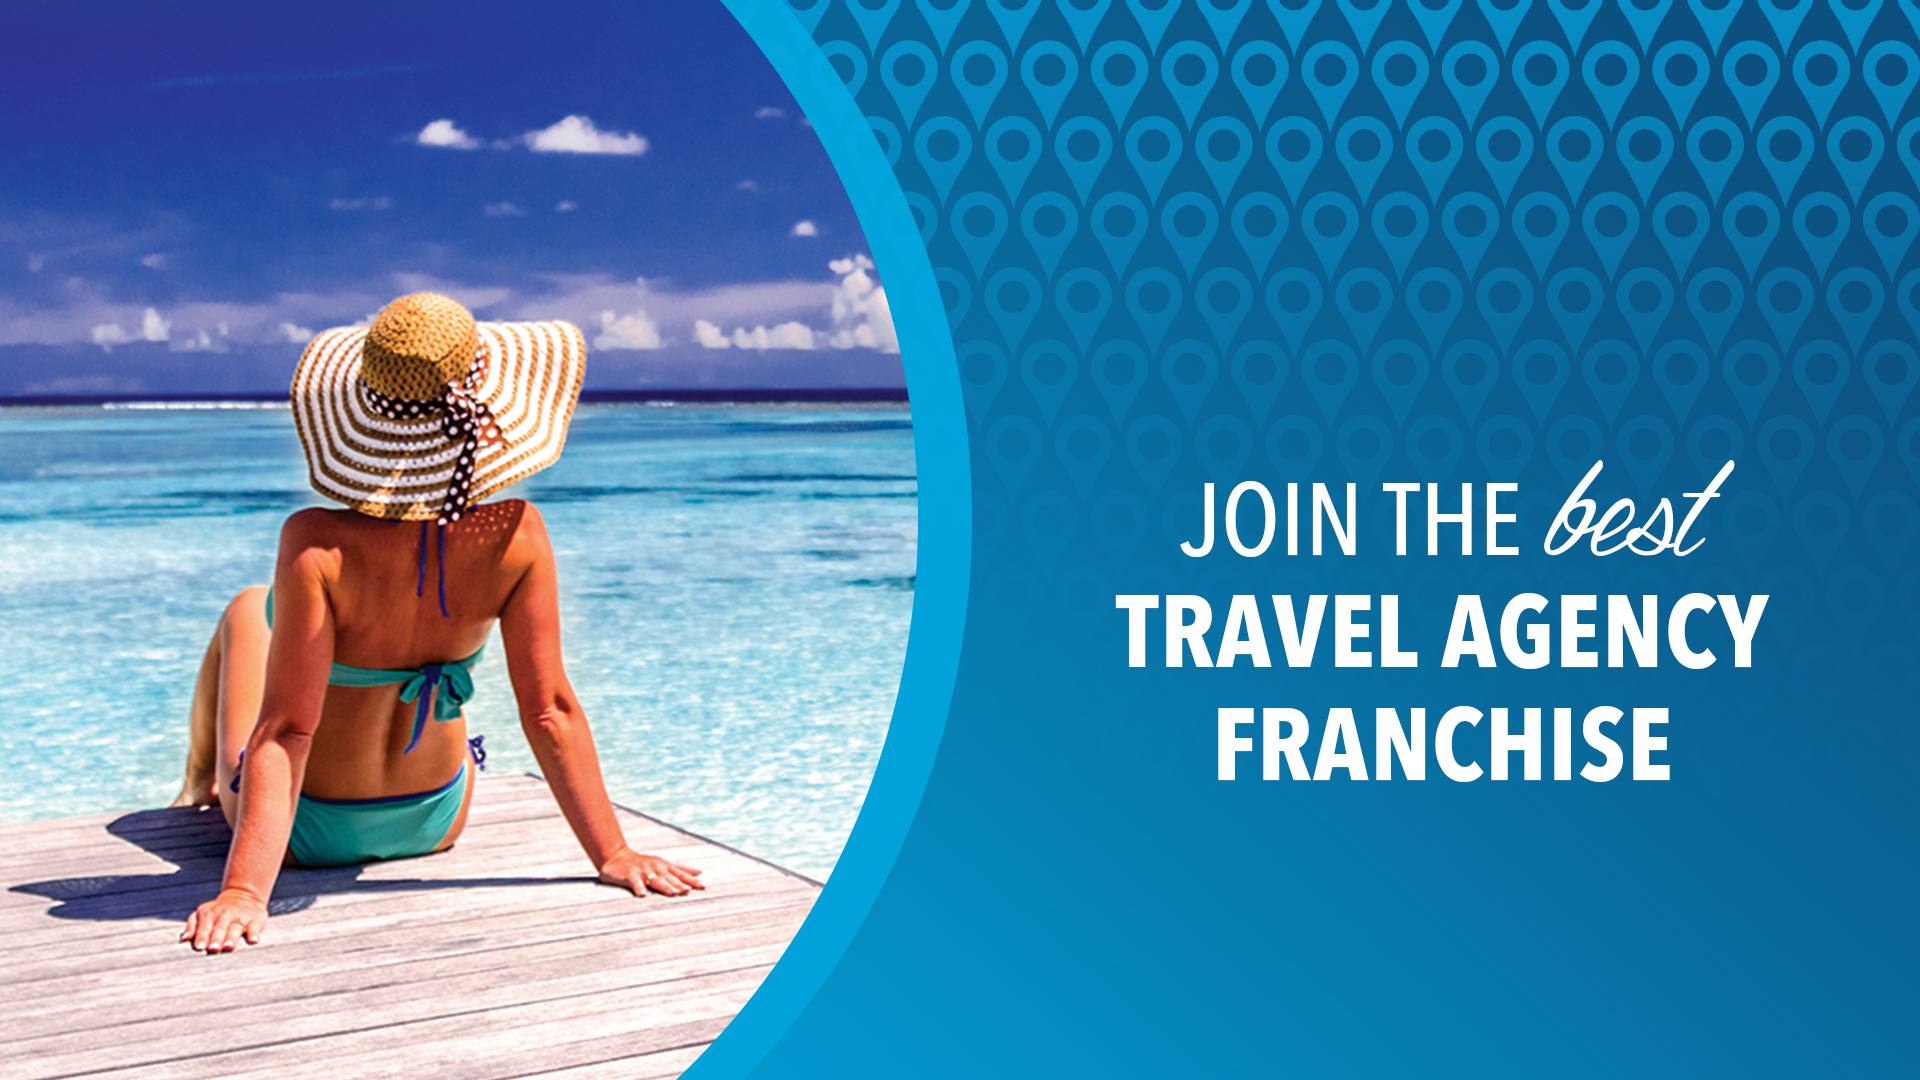 Dream Vacations Travel Agency Franchise